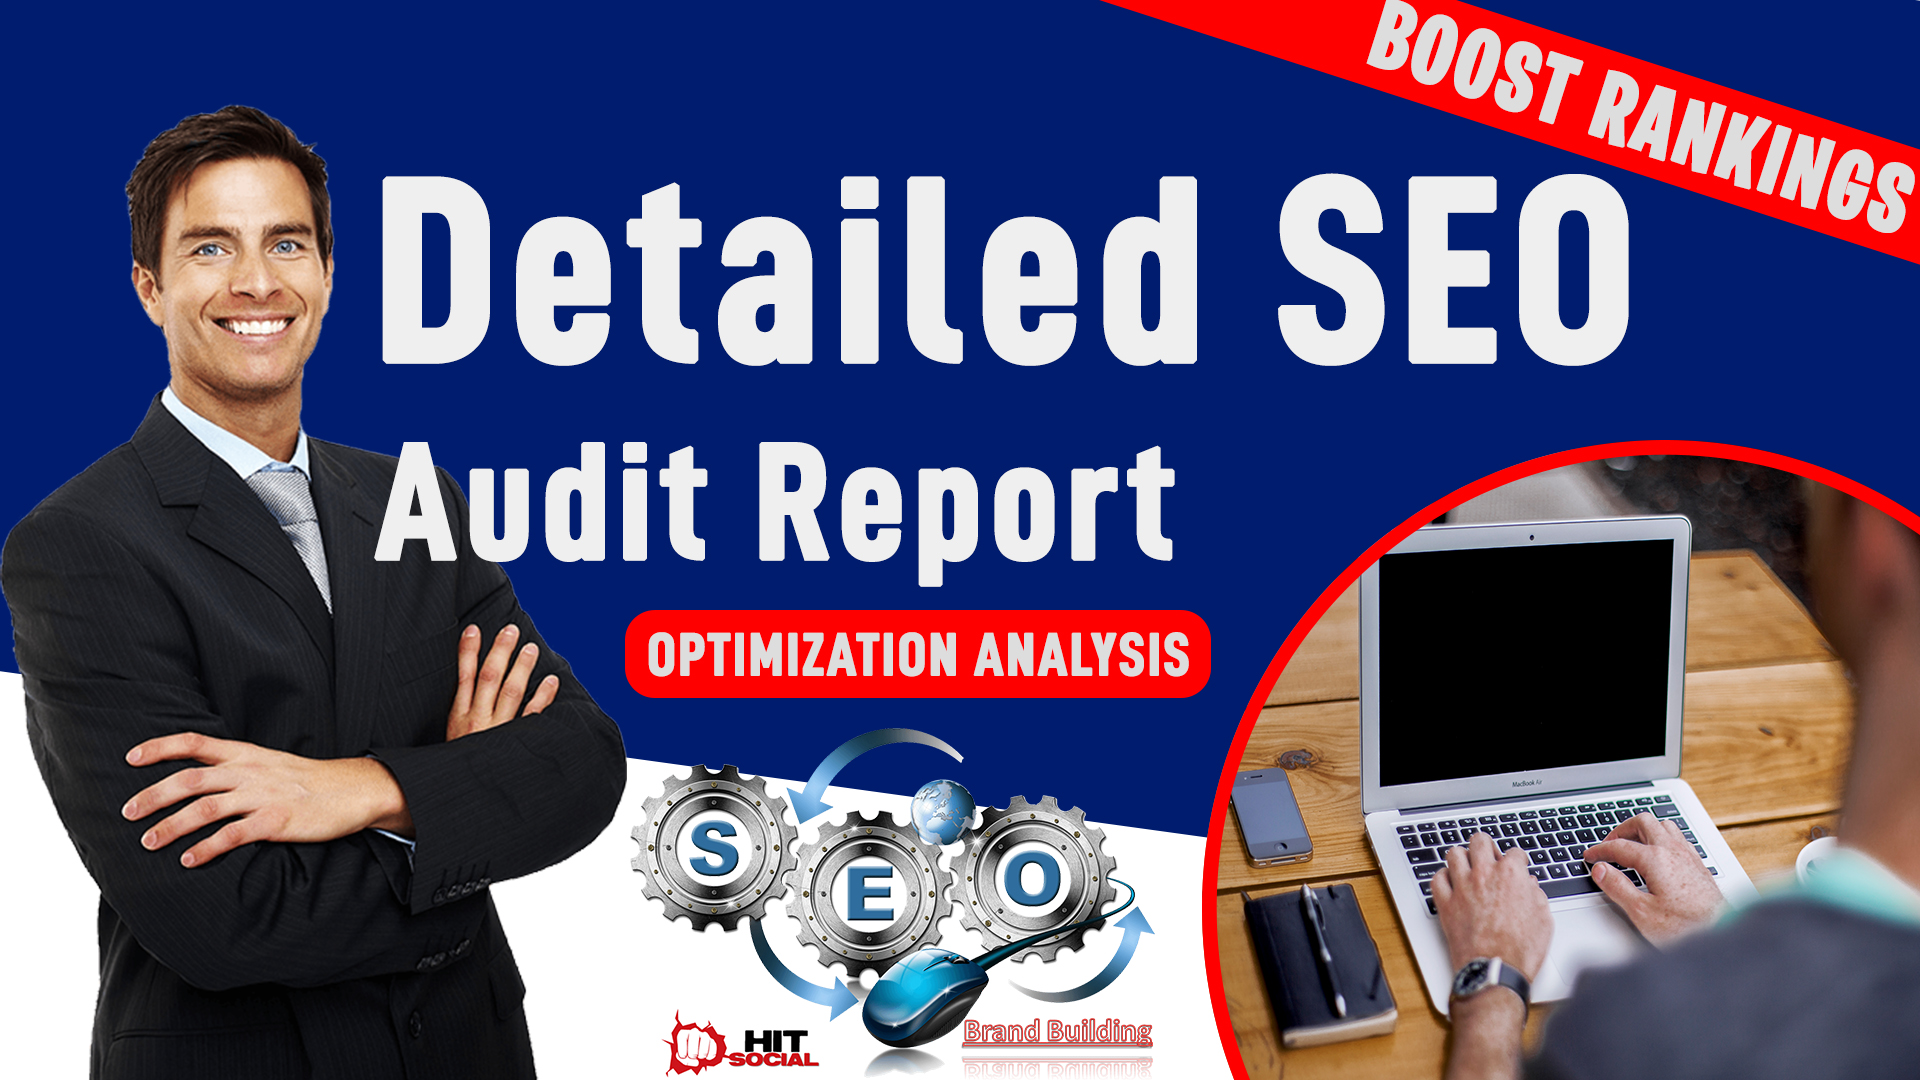 I Will Do a Detailed SEO Report. Outlining all SEO Issues To Help You Better Optimize Your Site.